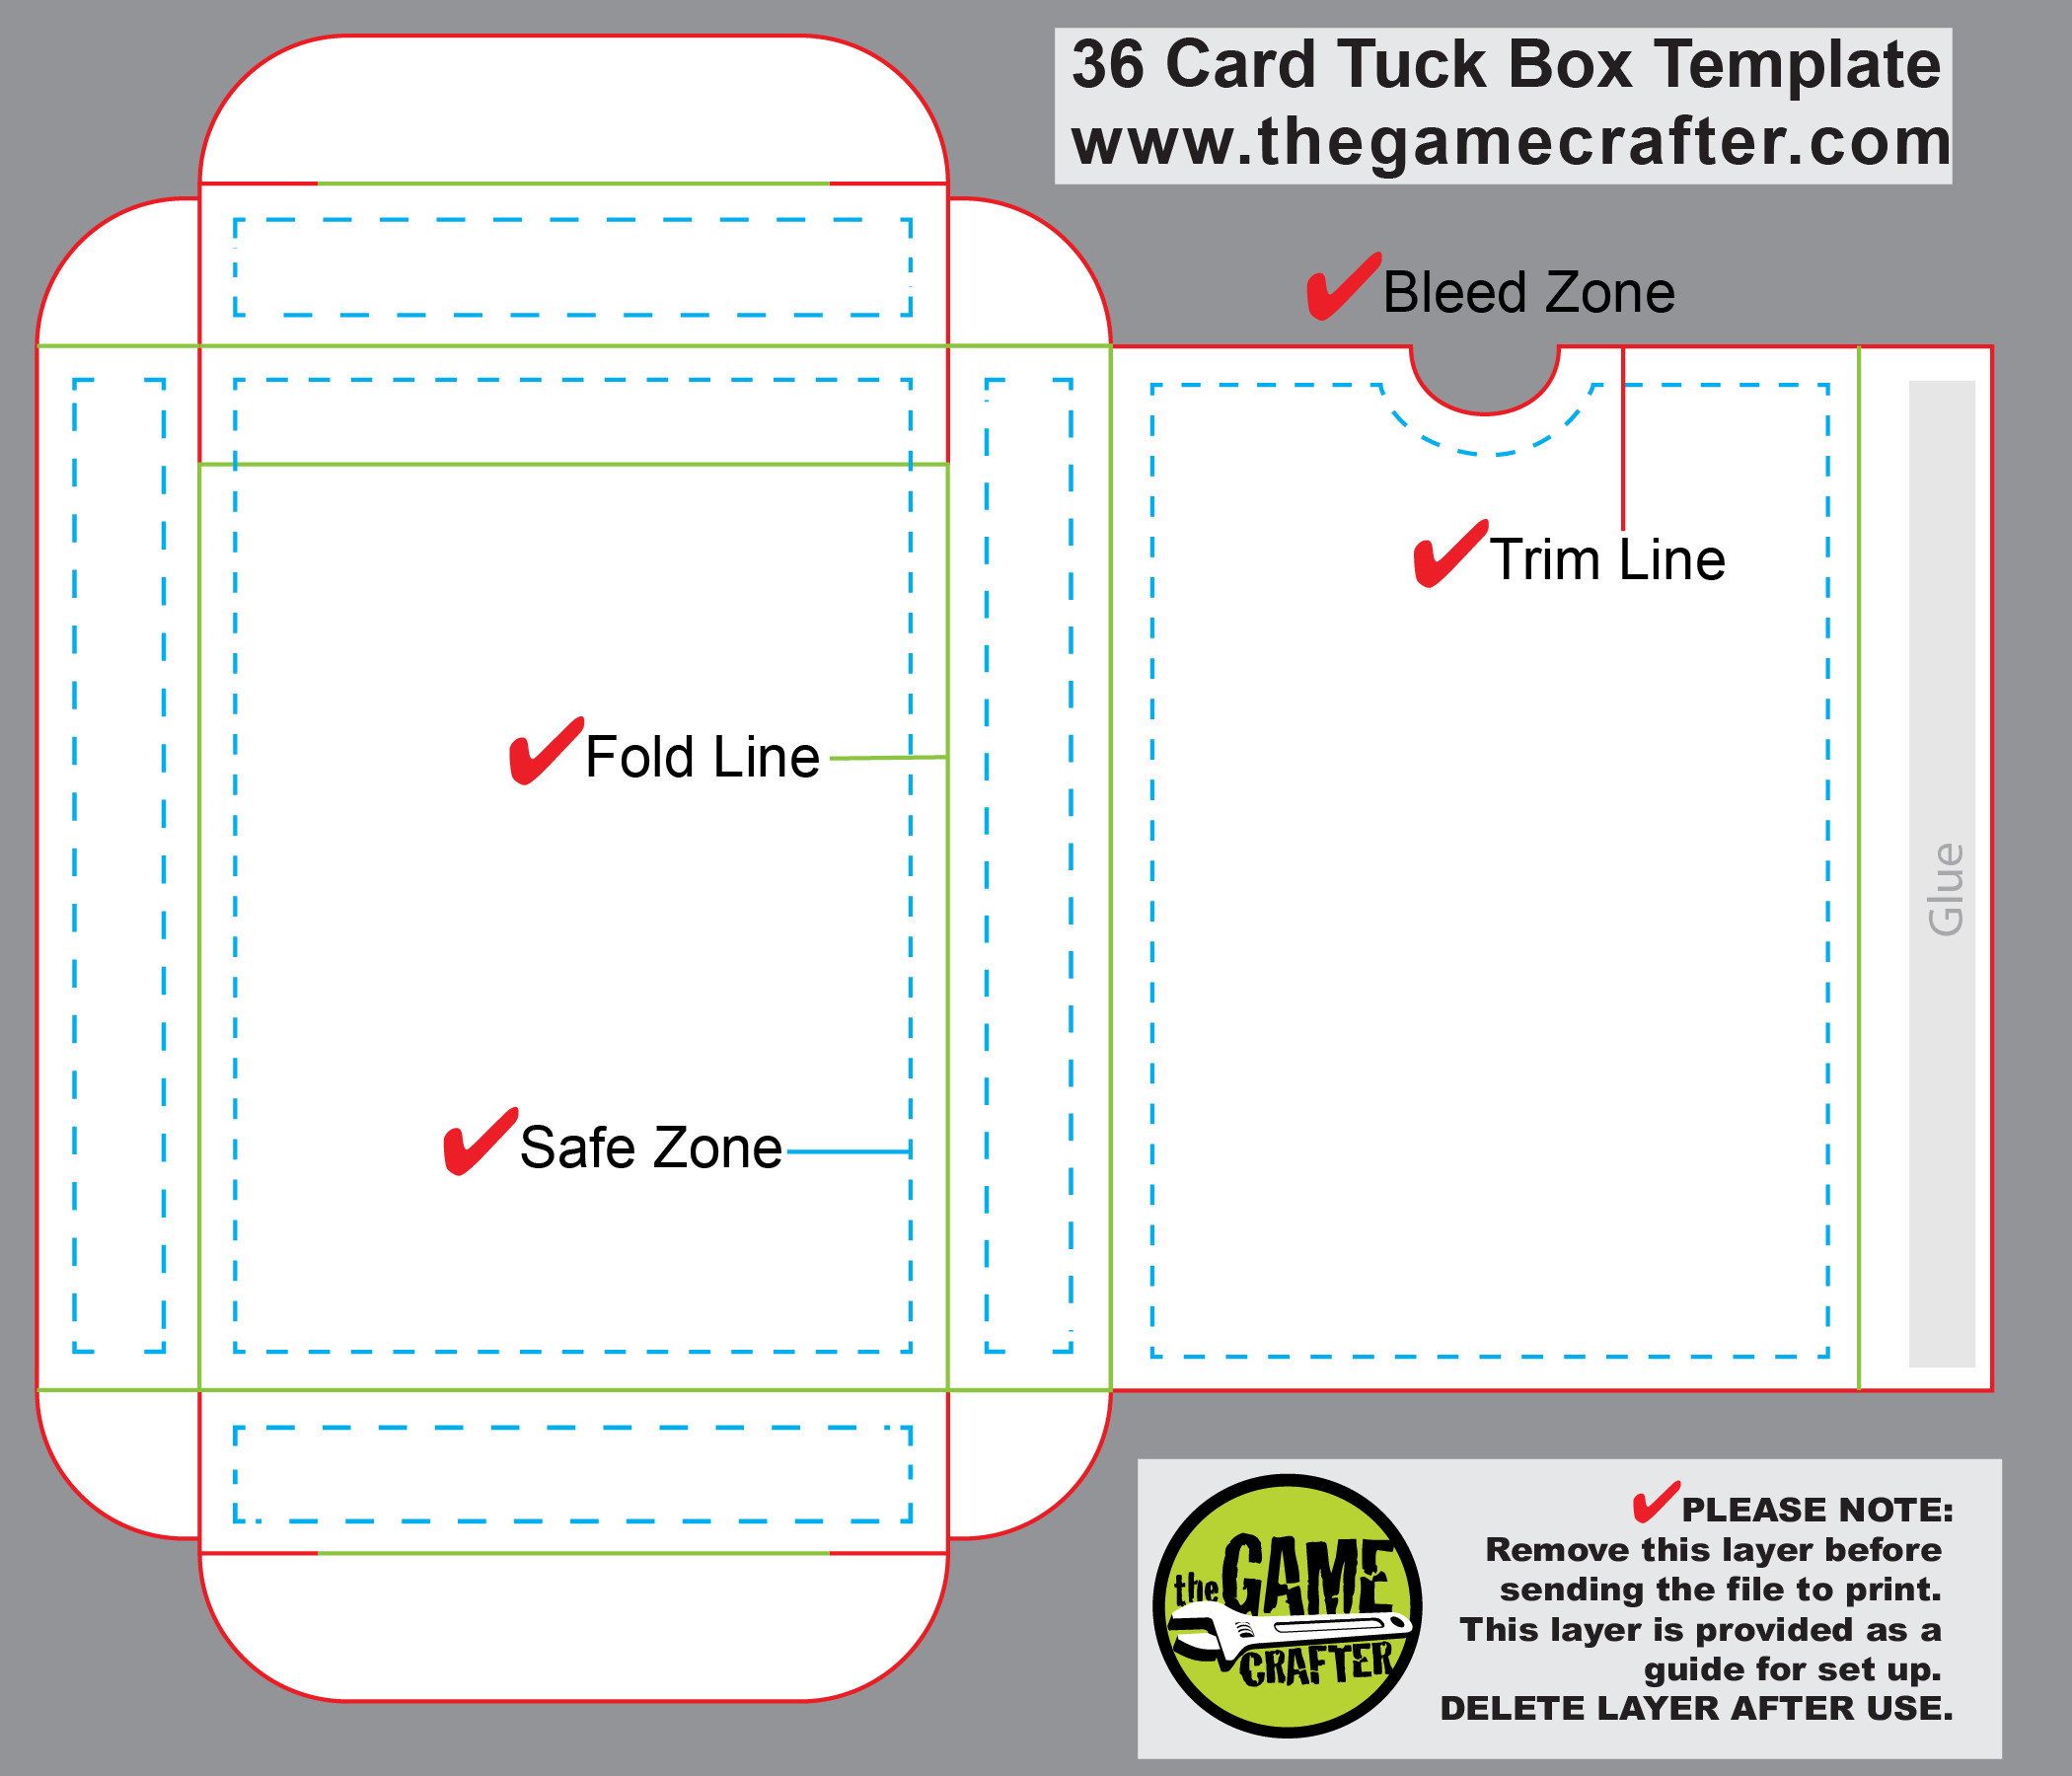 Playing Card Box Template Poker Tuck Box 36 Cards